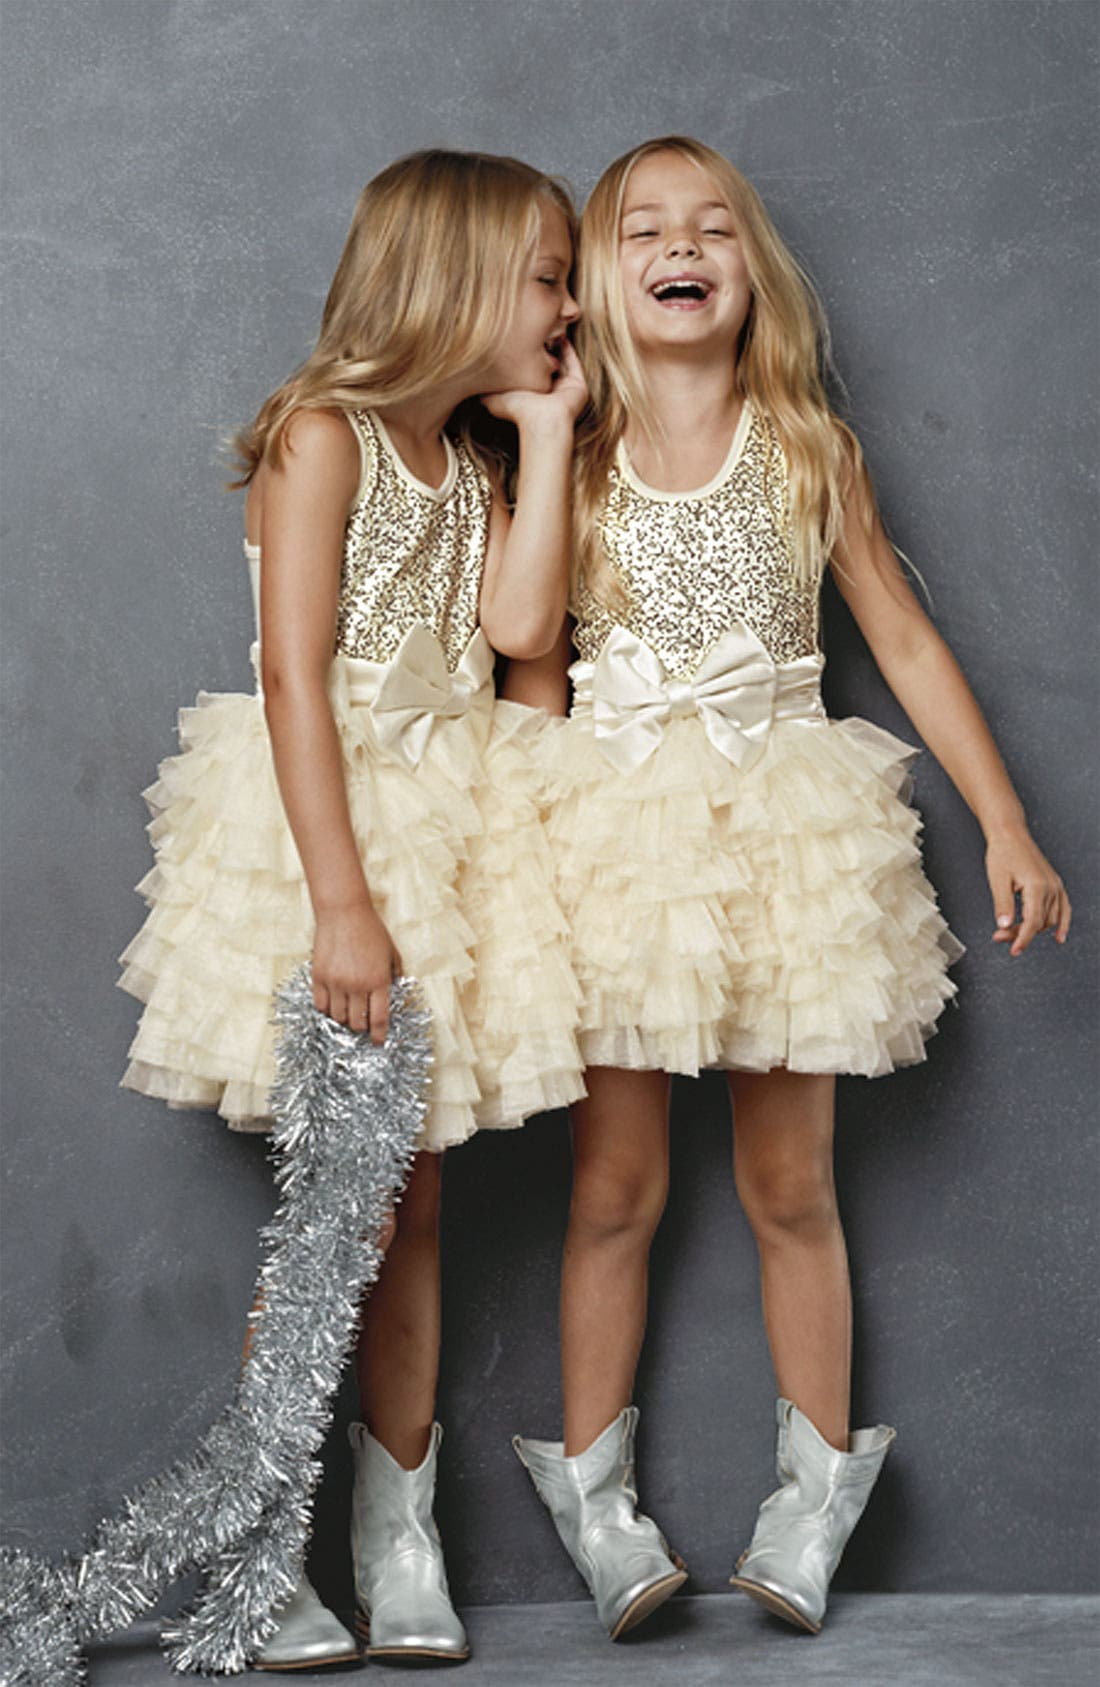 Alternate Image 1 Selected - Ooh! La, La! Couture Dress & Peek Boots (Little Girls & Big Girls)